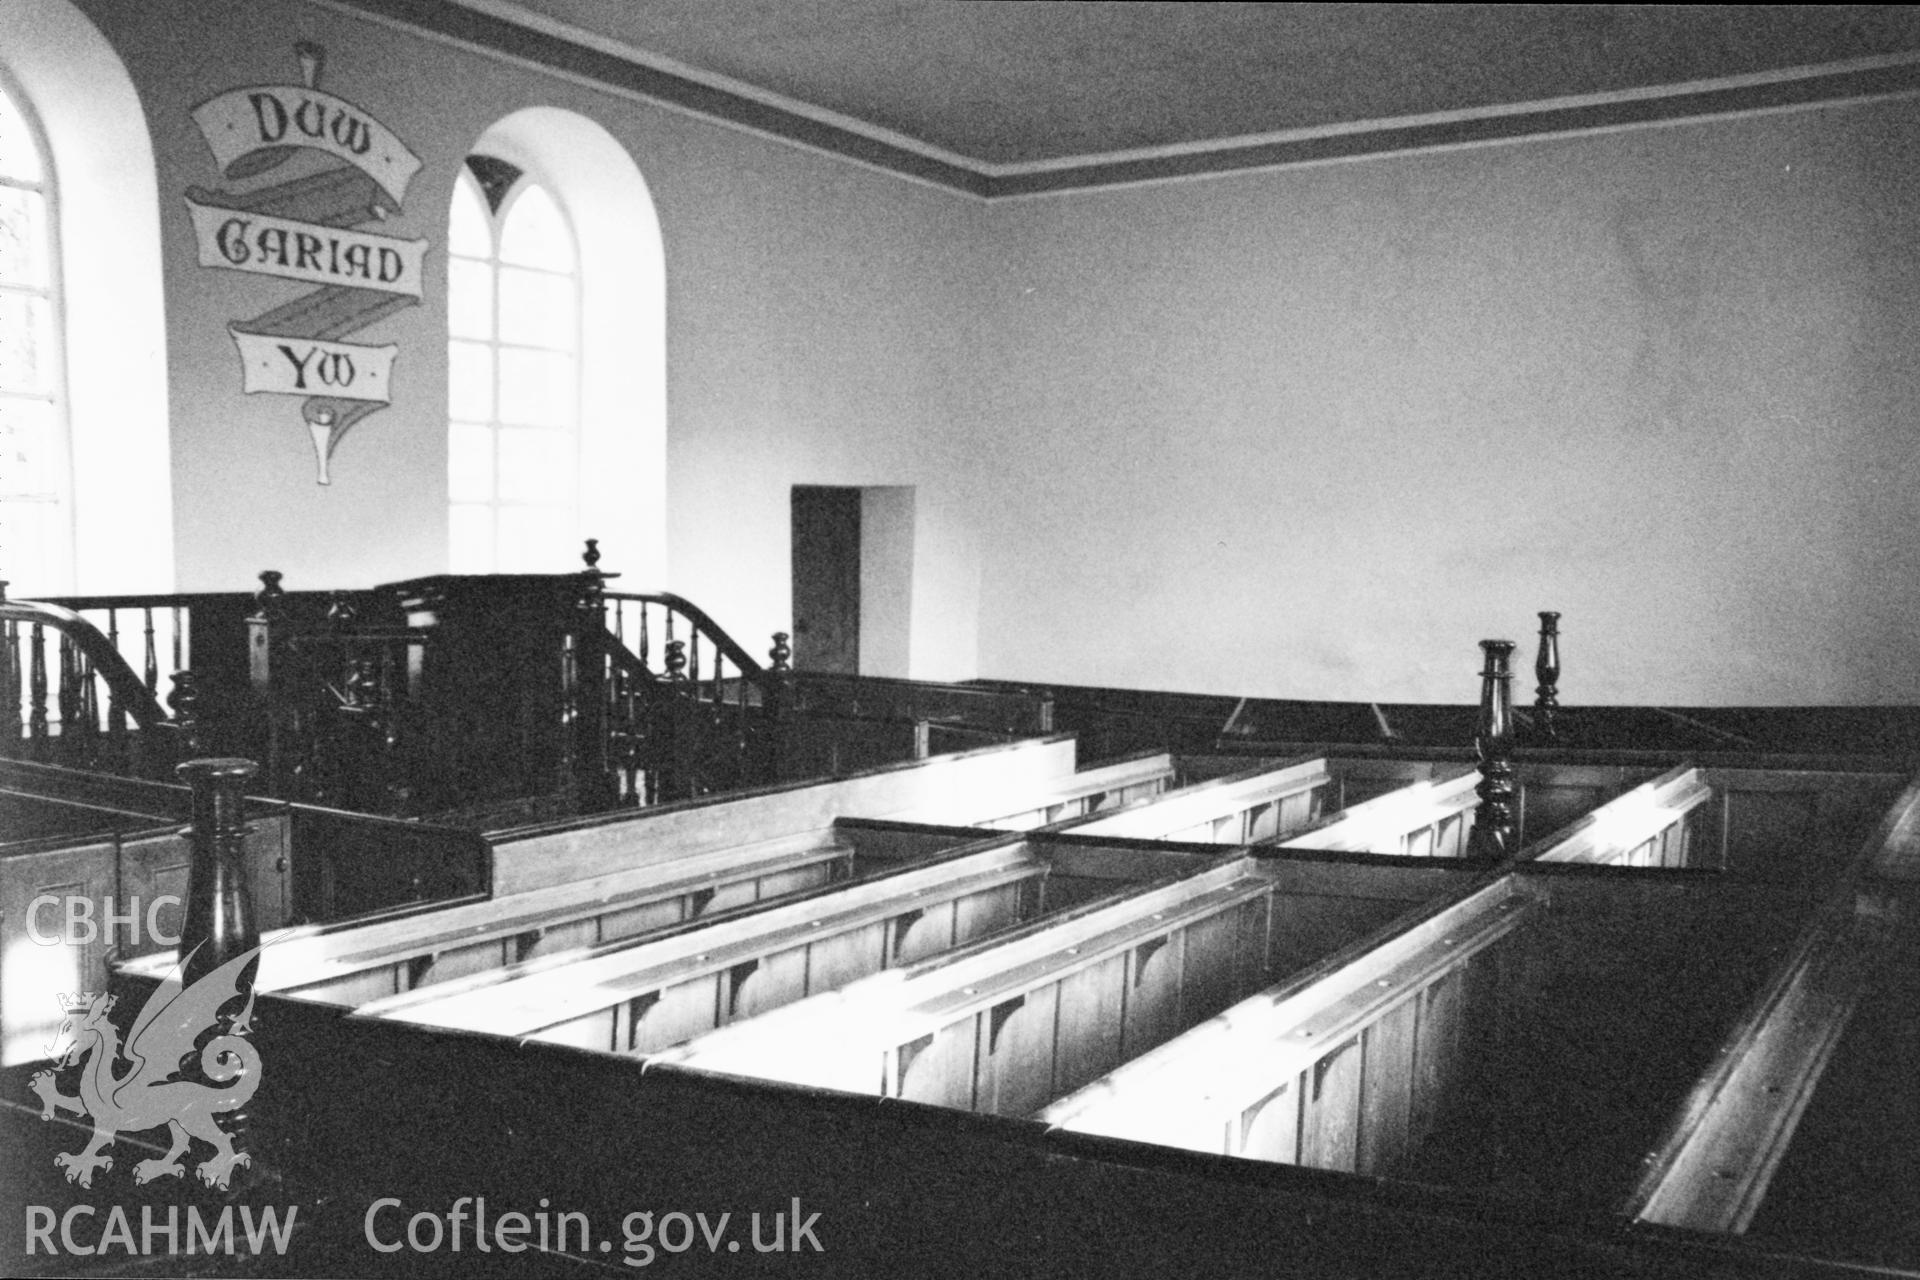 Digital copy of a black and white photograph showing an interior view of Soar-y-Mynydd  Welsh Calvinistic Methodist Chapel, Llanddewi Brefi, taken by Robert Scourfield, 1996.